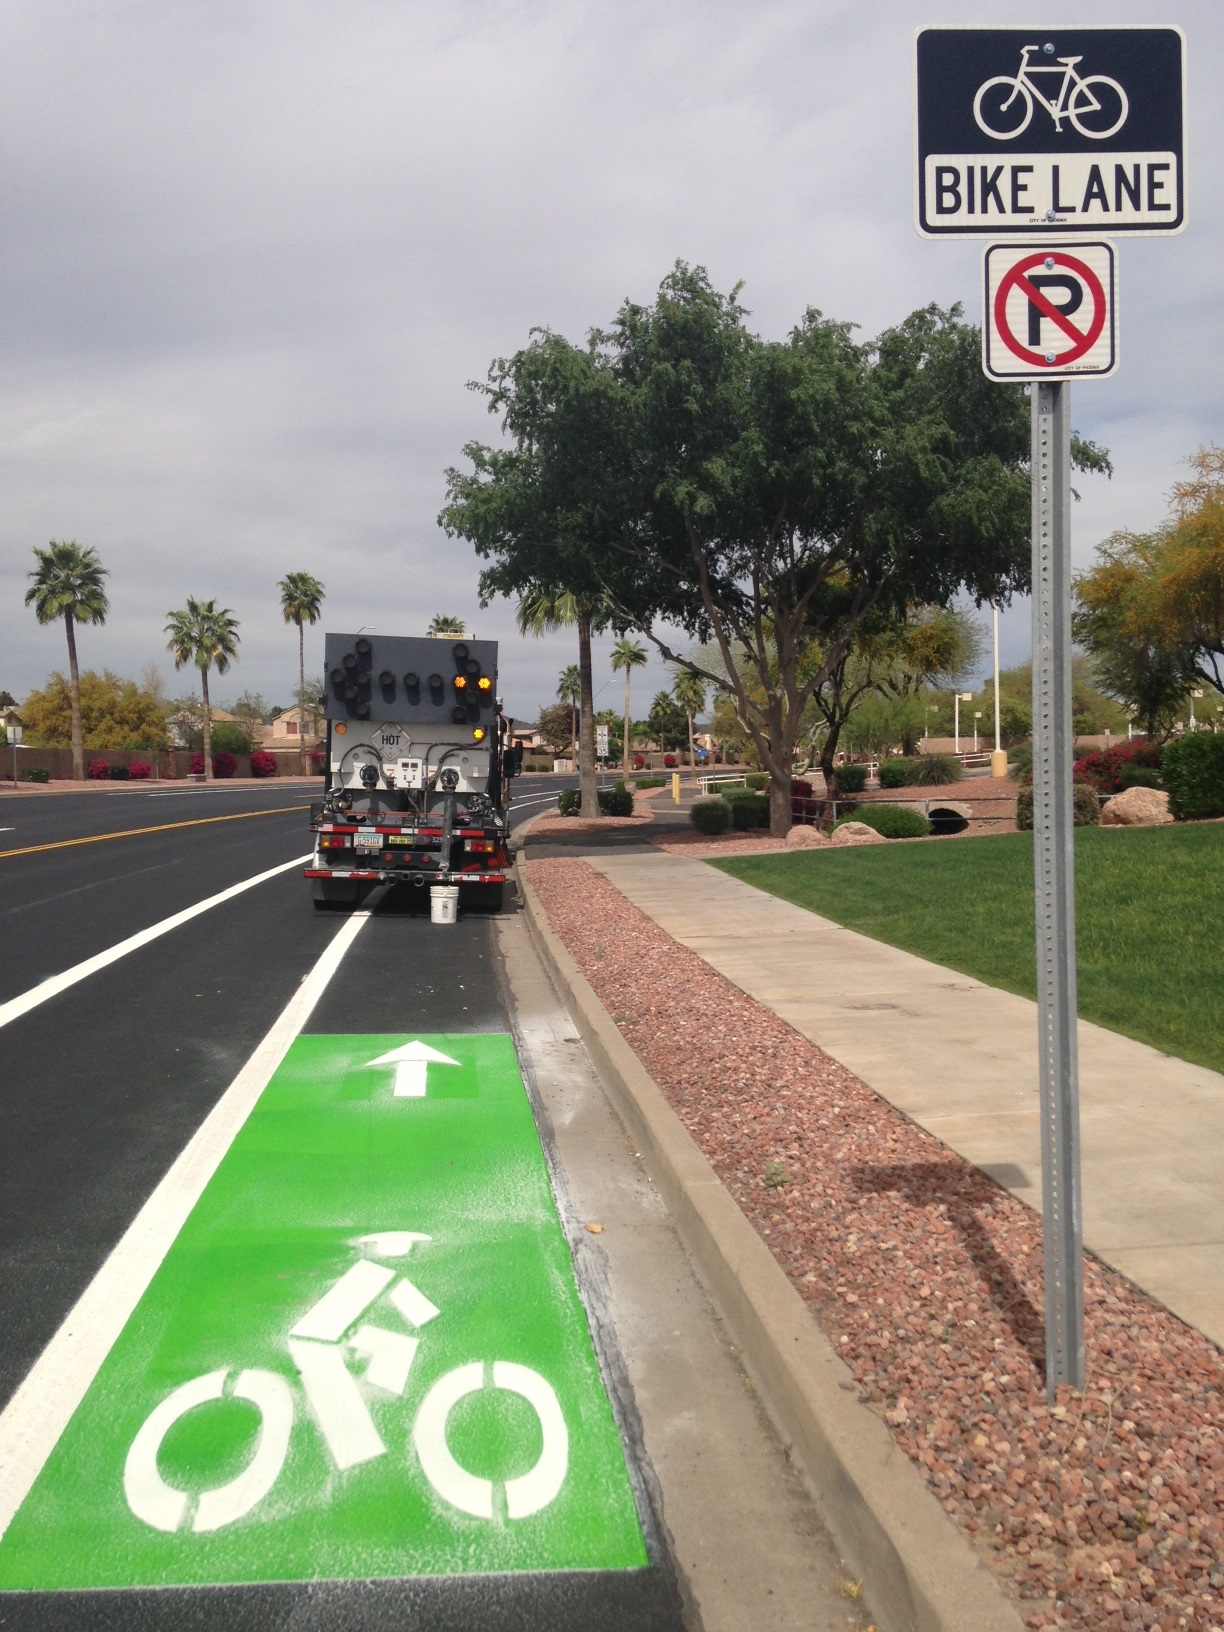 Green bike lane with white symbols being painted